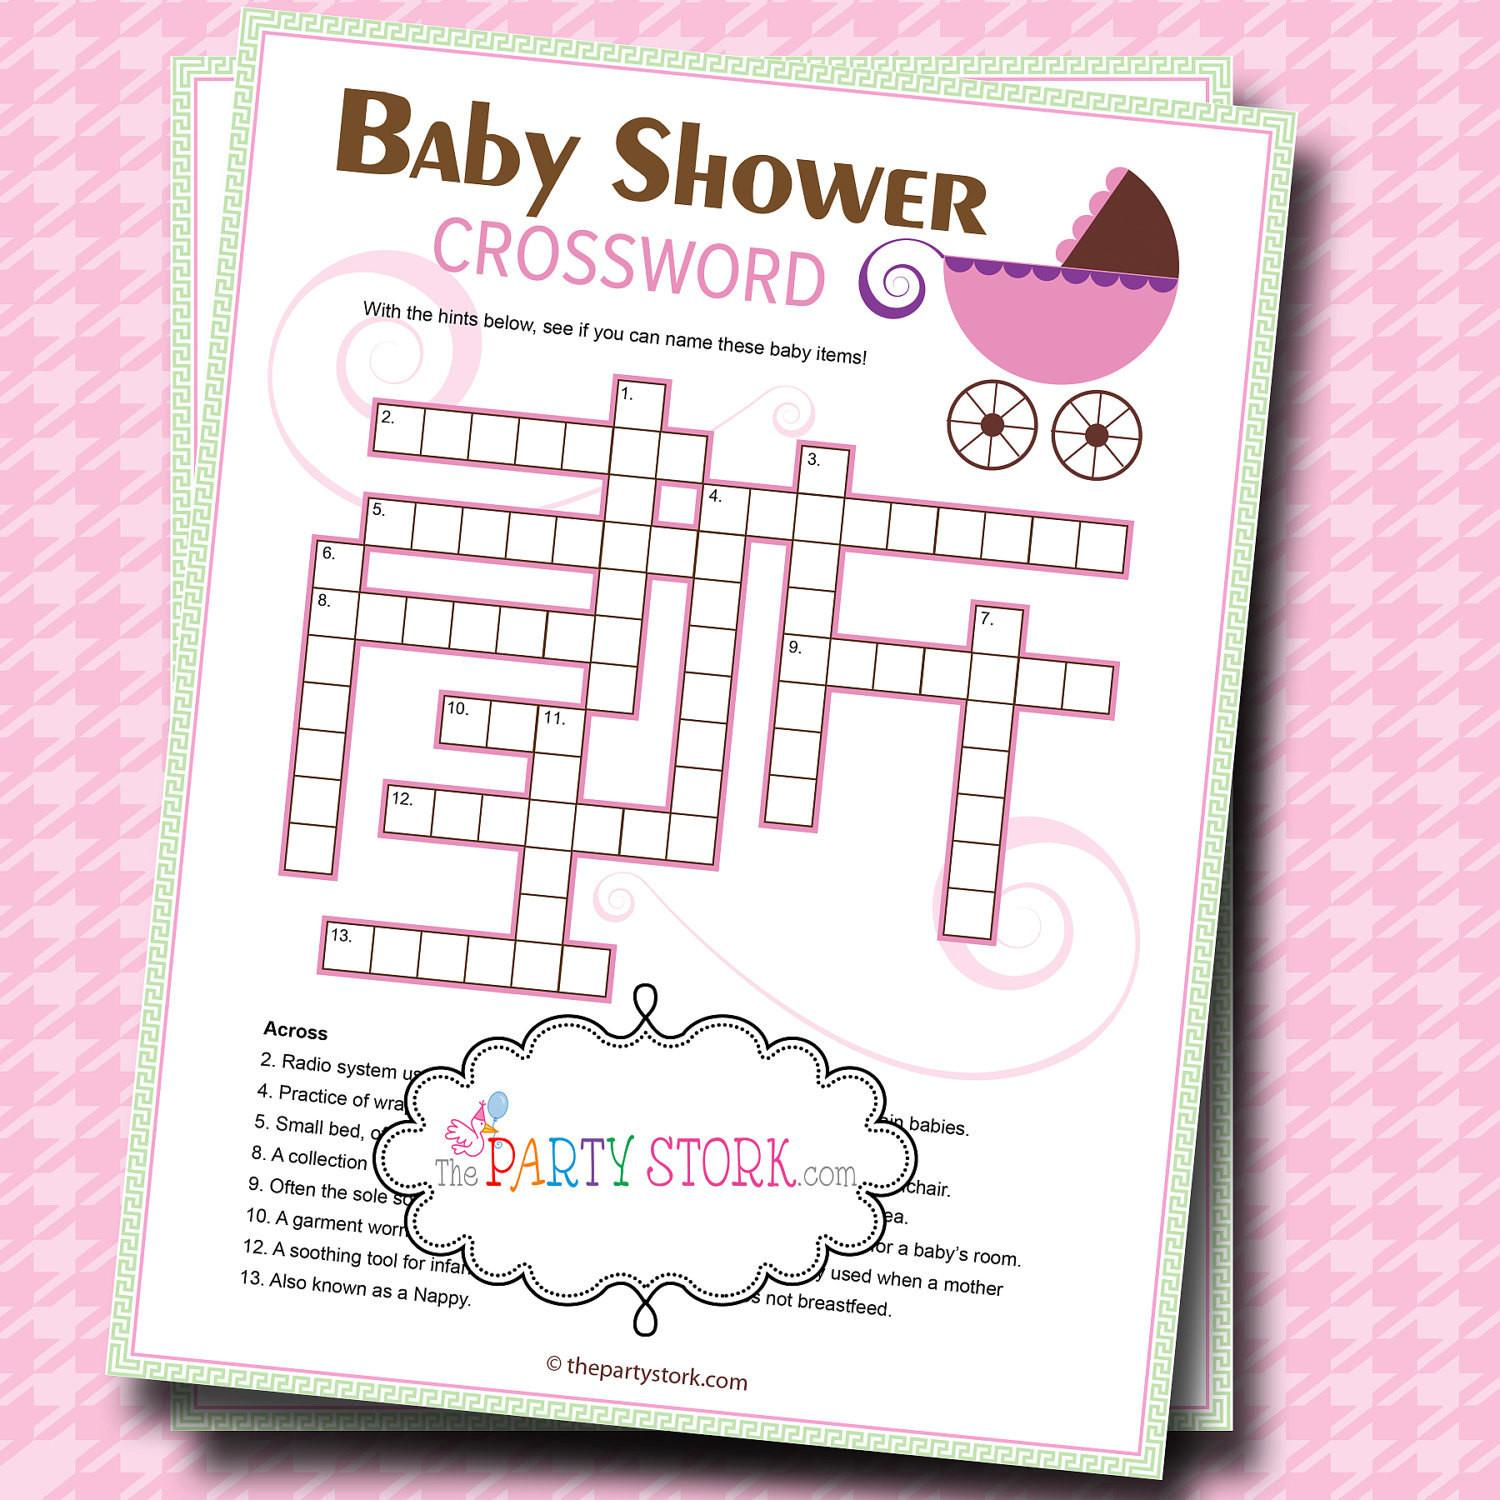 Baby Shower Games Crossword Puzzle Game Printable